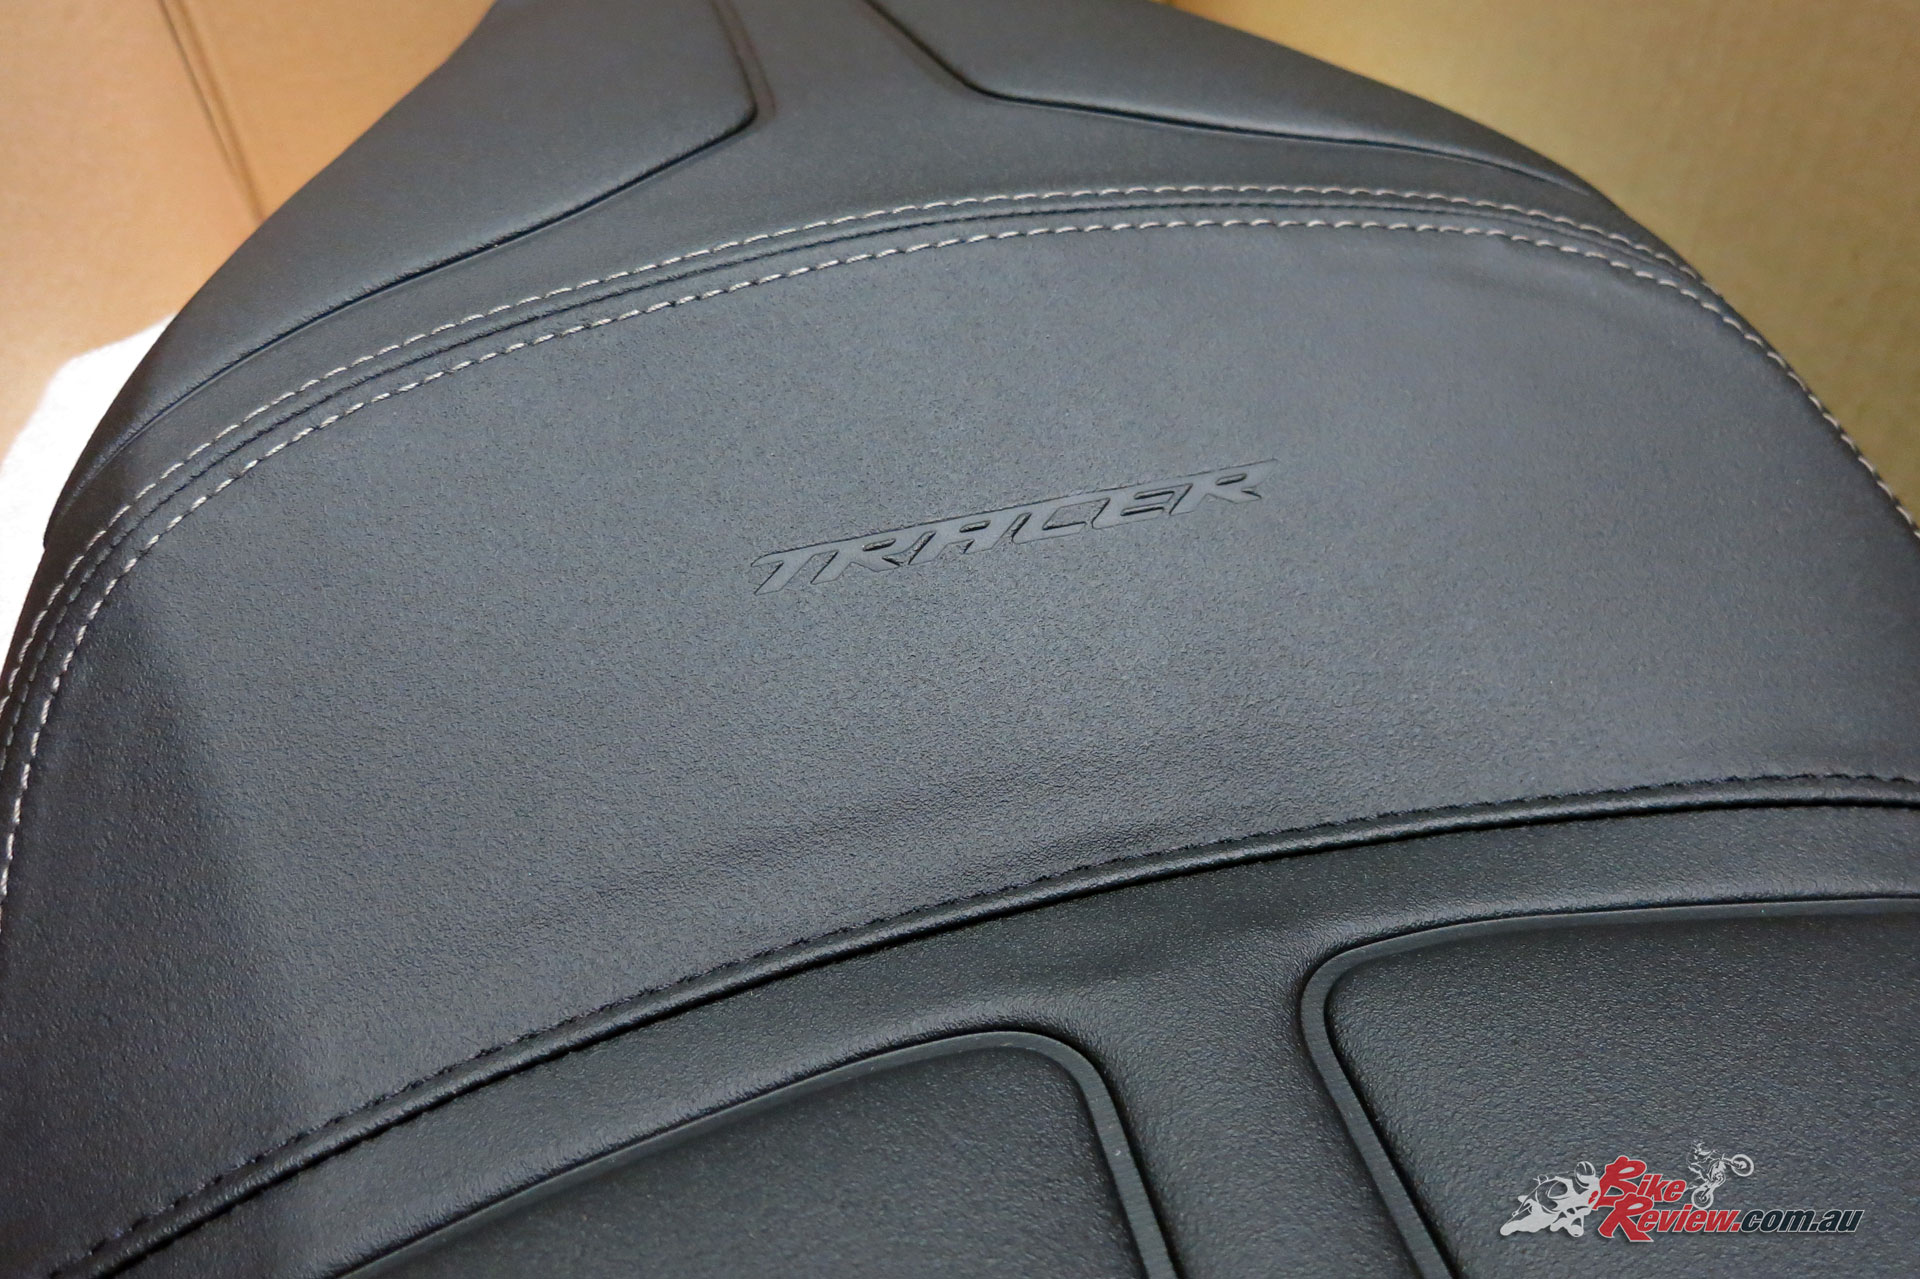 Tracer is also embossed across the seat, in a cool touch.